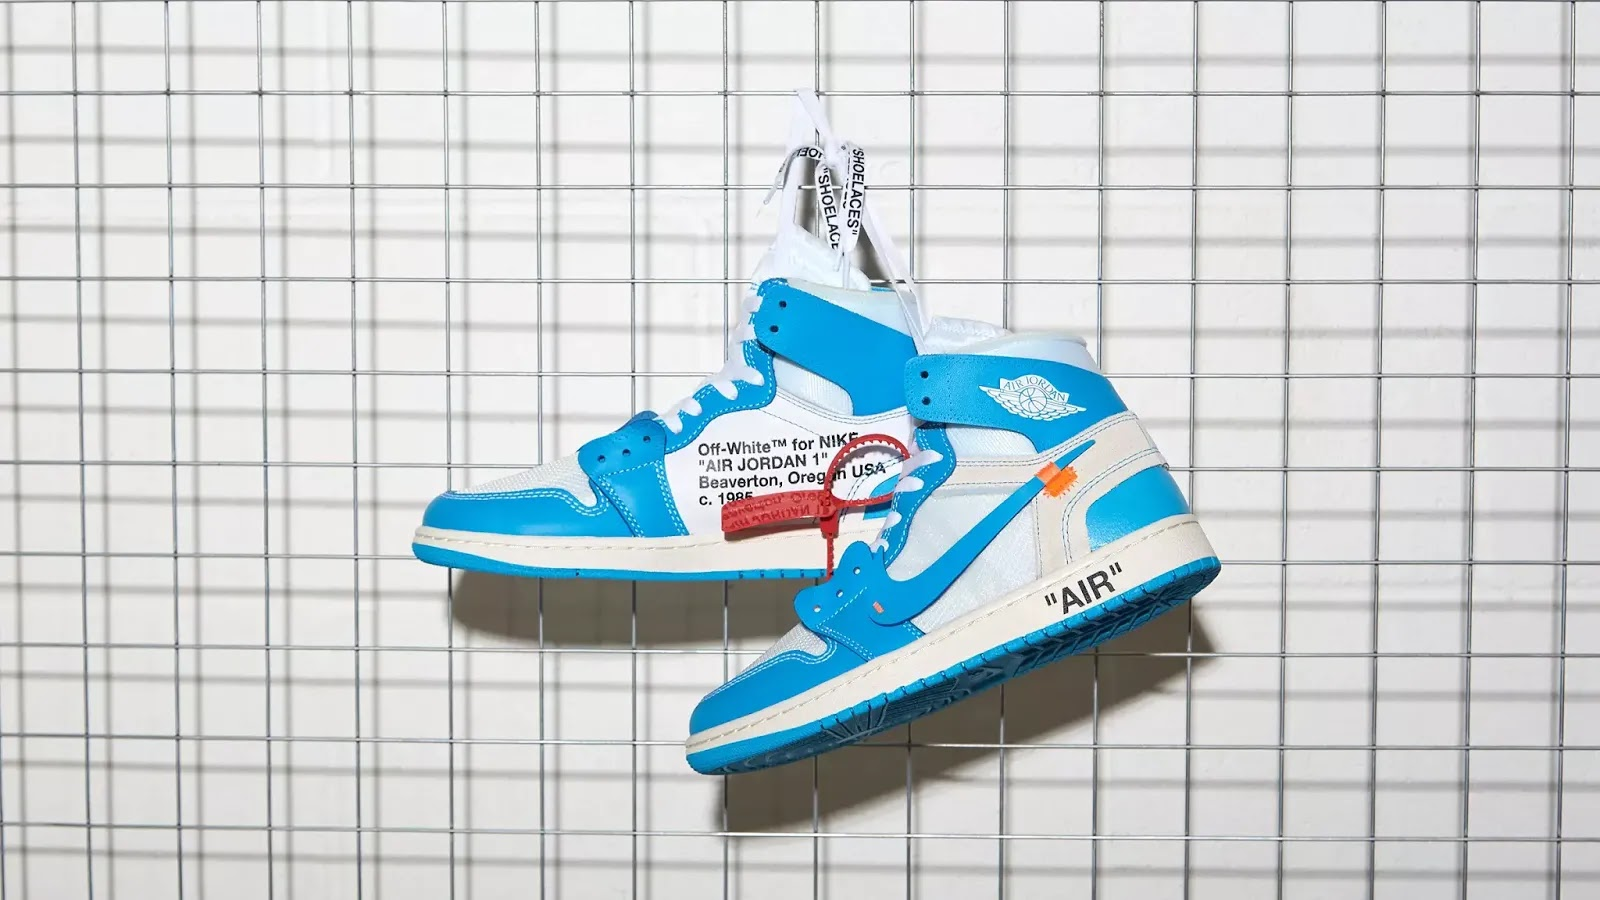 Off White Jordan Nike Energy 1 X Raffle Air W9EDH2I